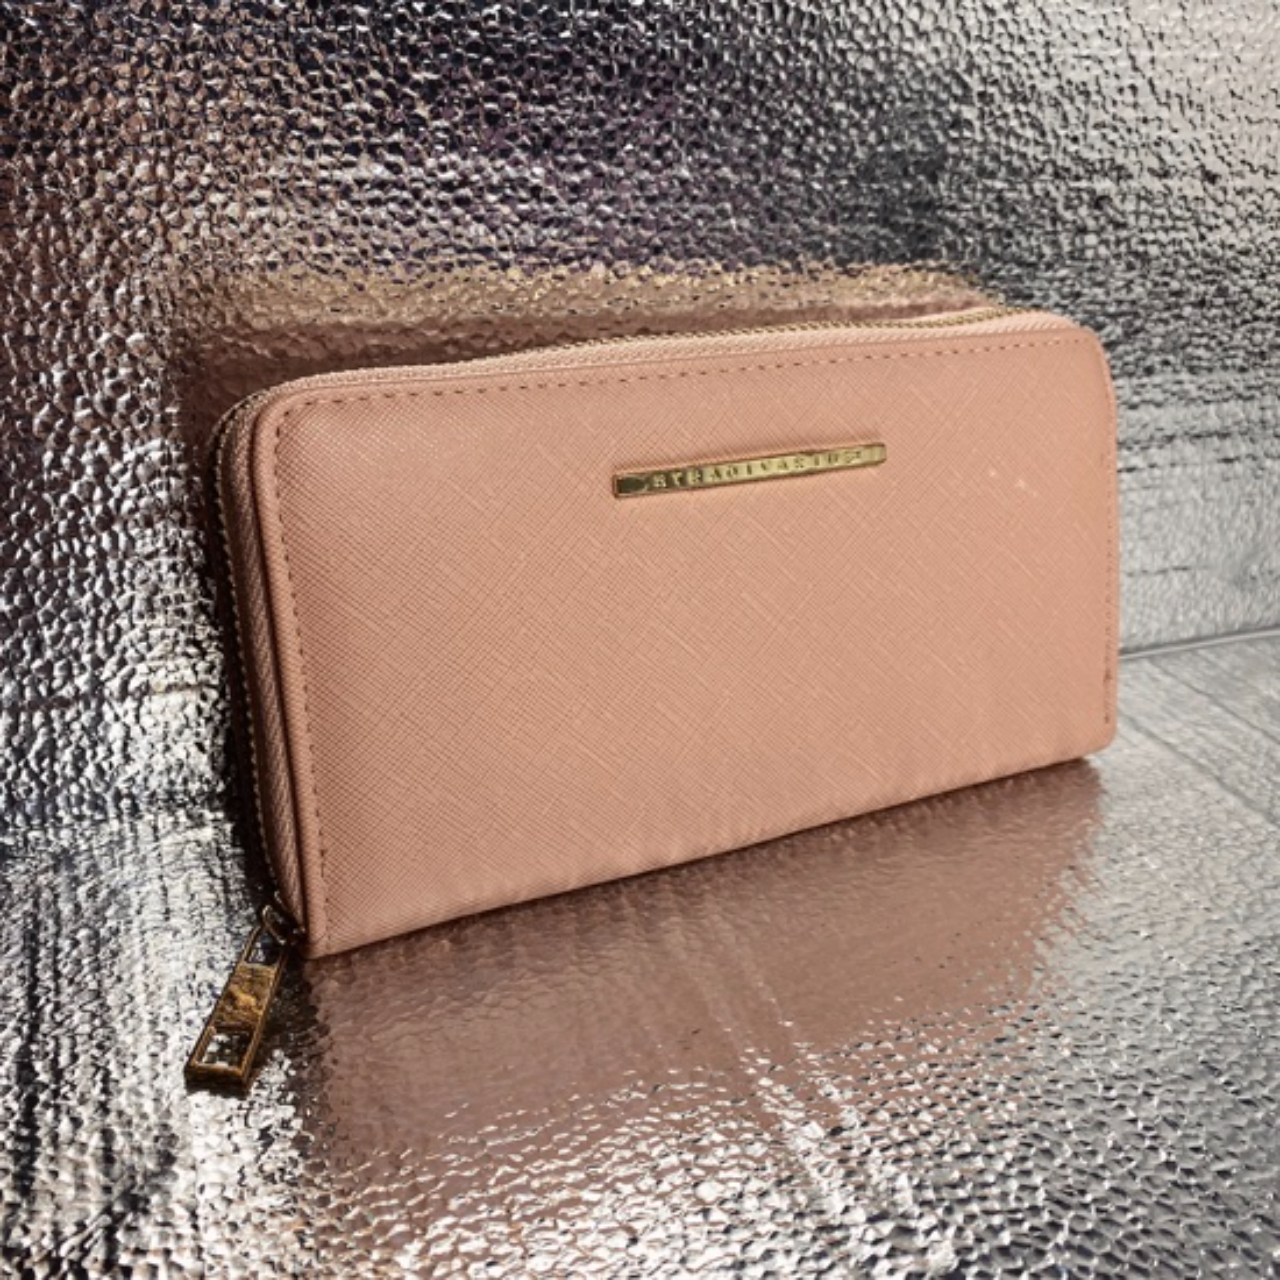 Product Image 1 - Cute new condition pink European